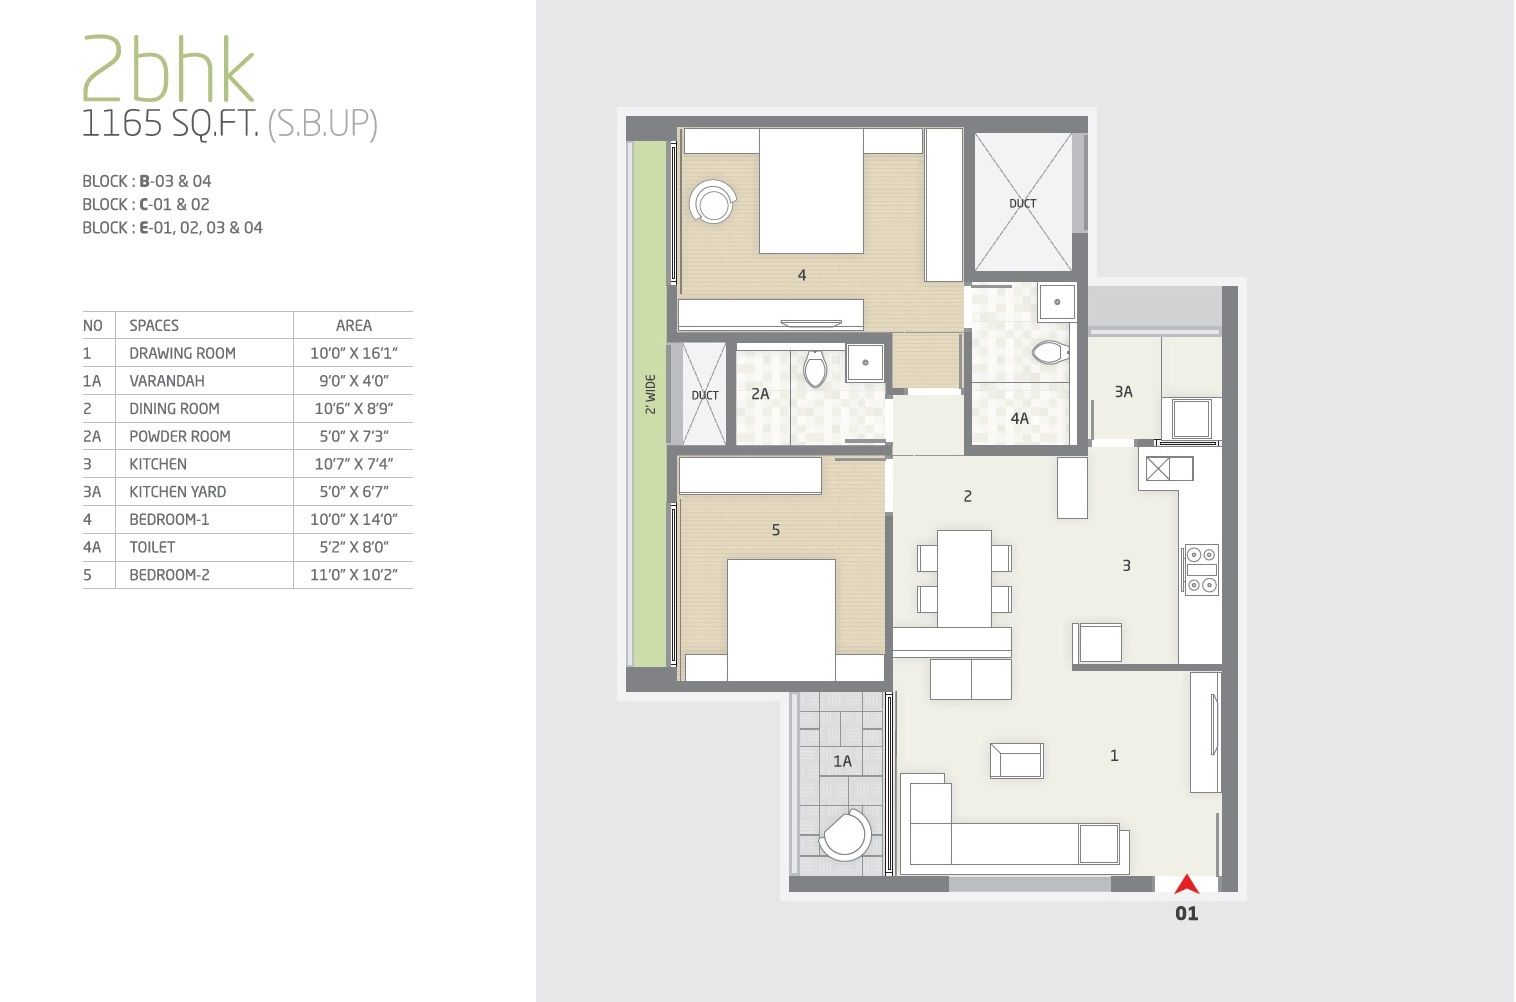 goyal and co orchid greens apartment 2bhk 1165sqft 1